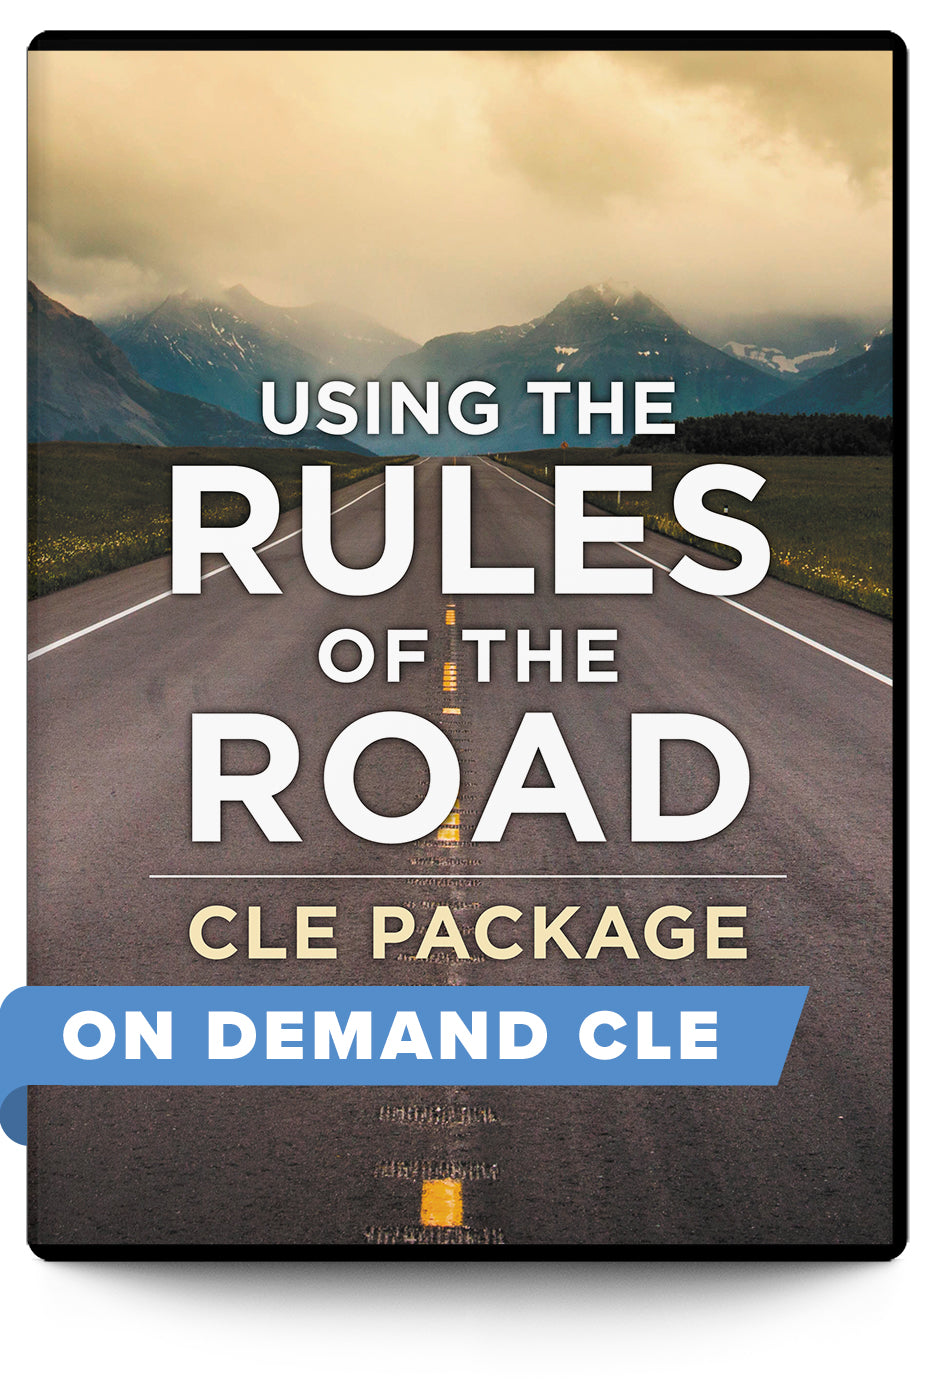 Using the Rules of the Road Package - On Demand CLE